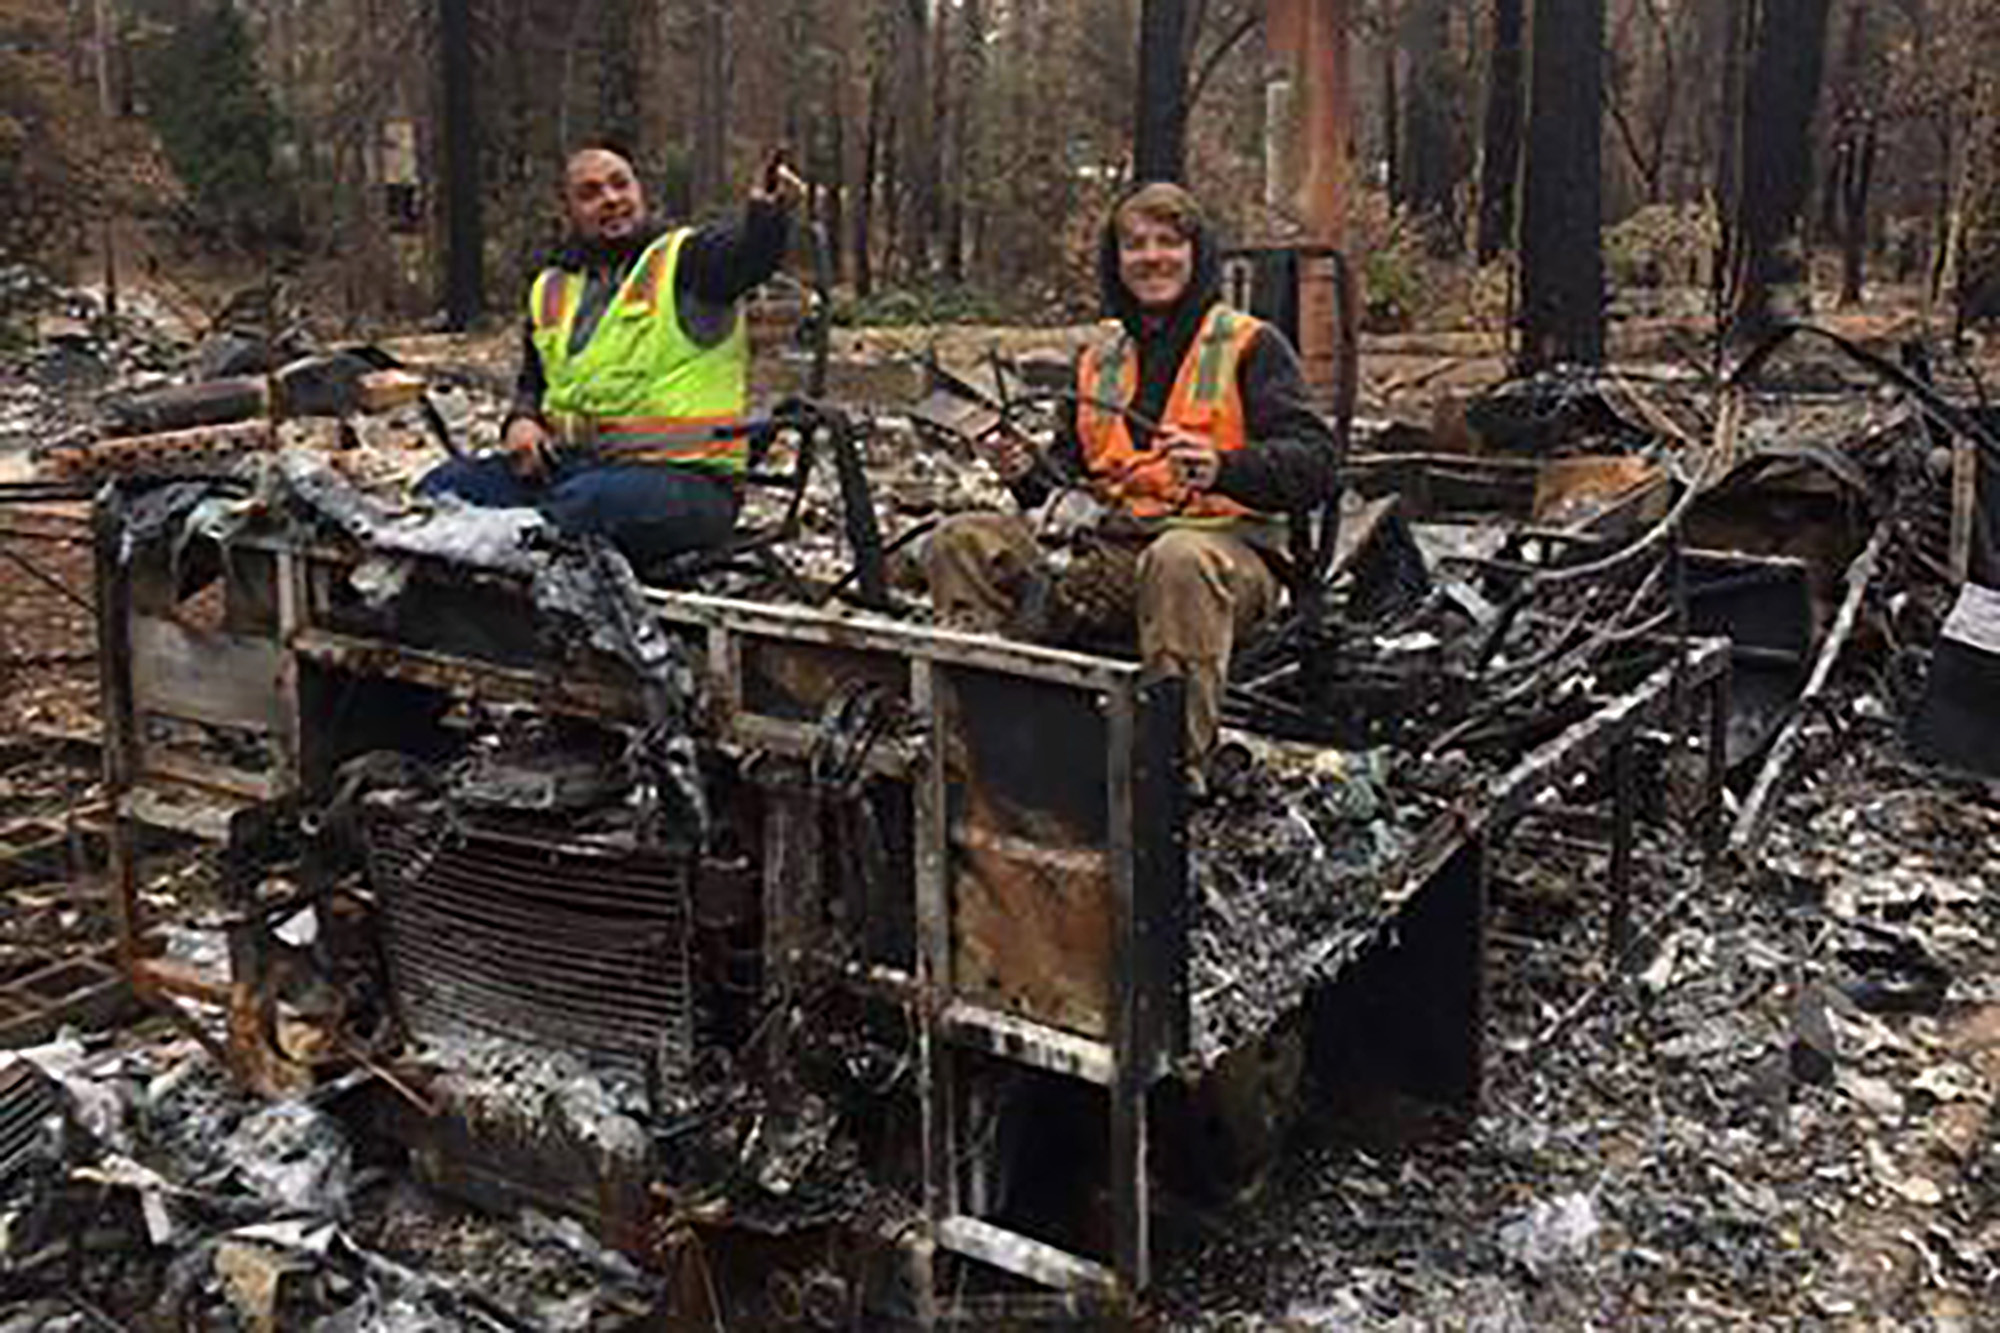 Camp Fire cleaning crew fired over 'abhorrent' social media posts